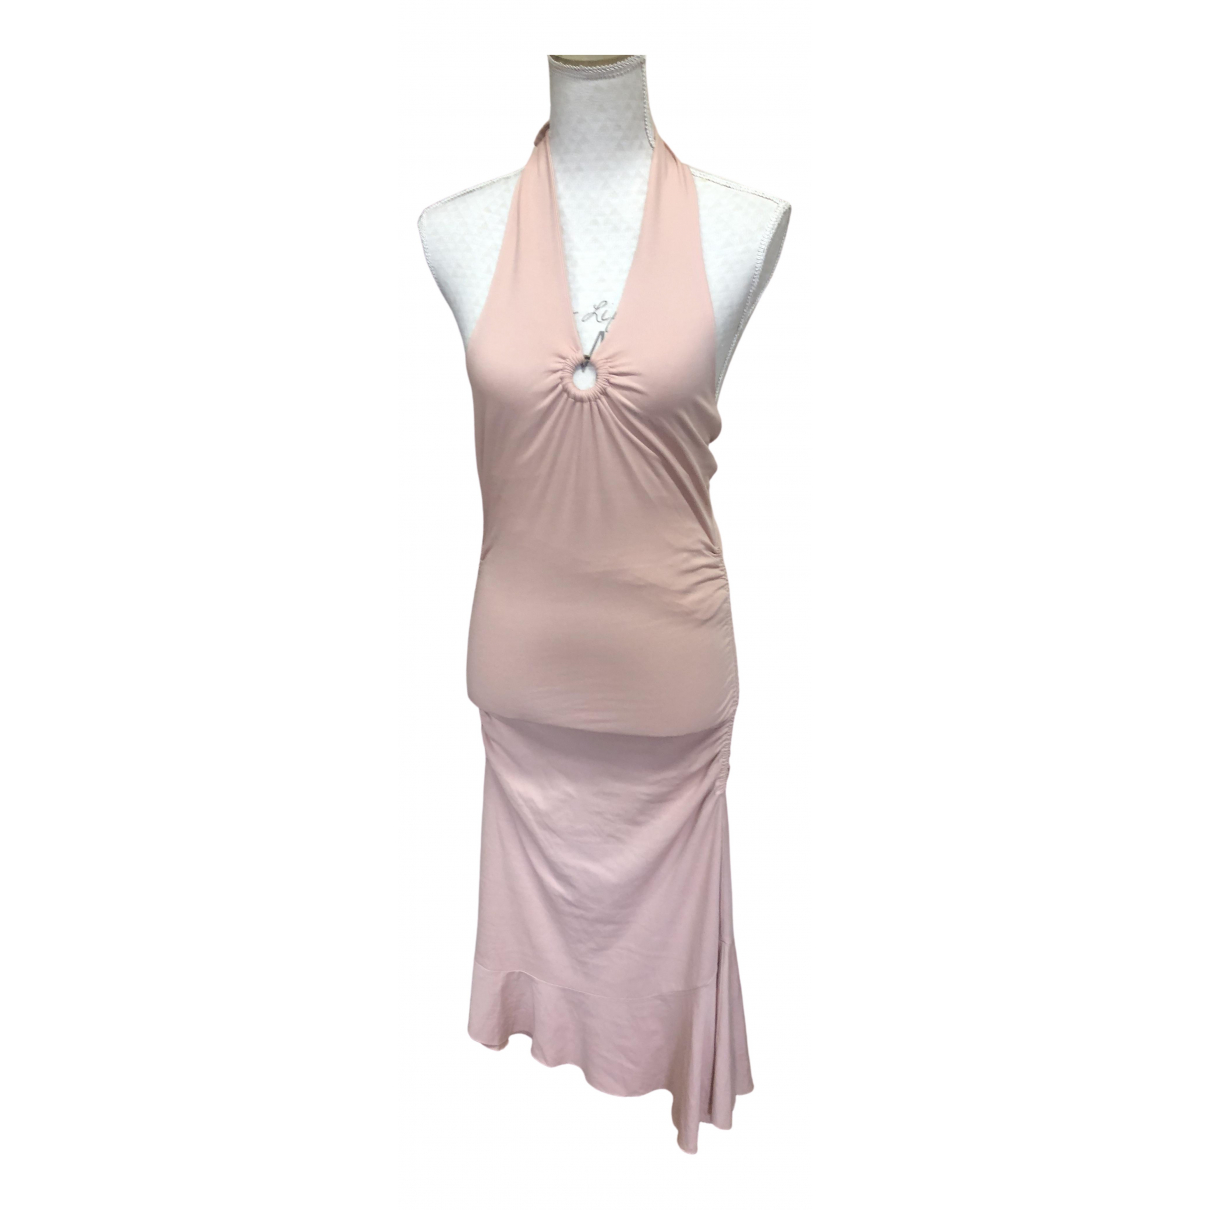 Blumarine \N Pink dress for Women 42 IT